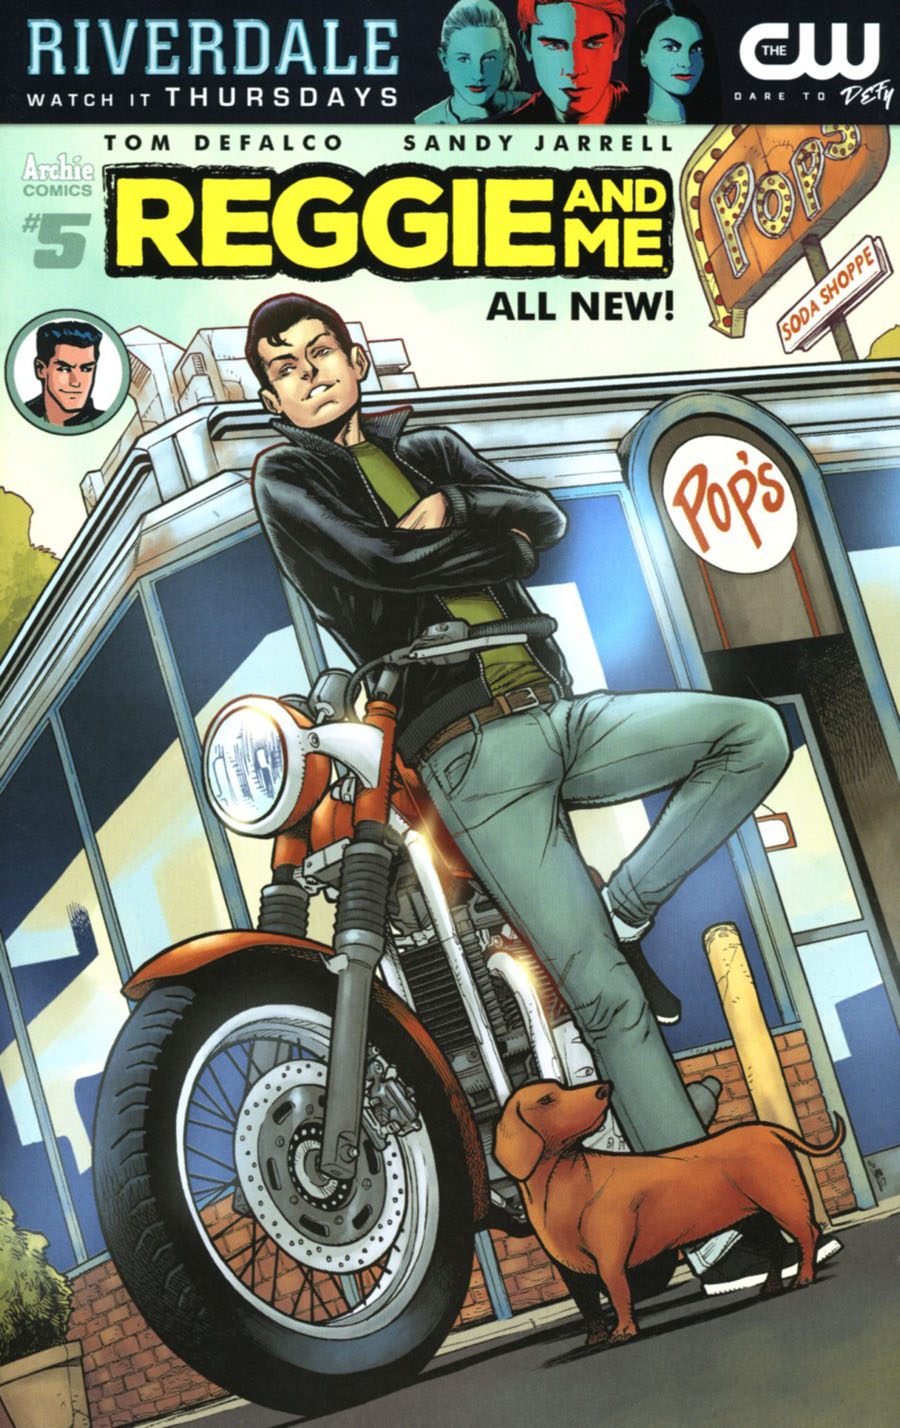 Reggie And Me Vol 2 #5 Cover C Variant Jim Towe Cover